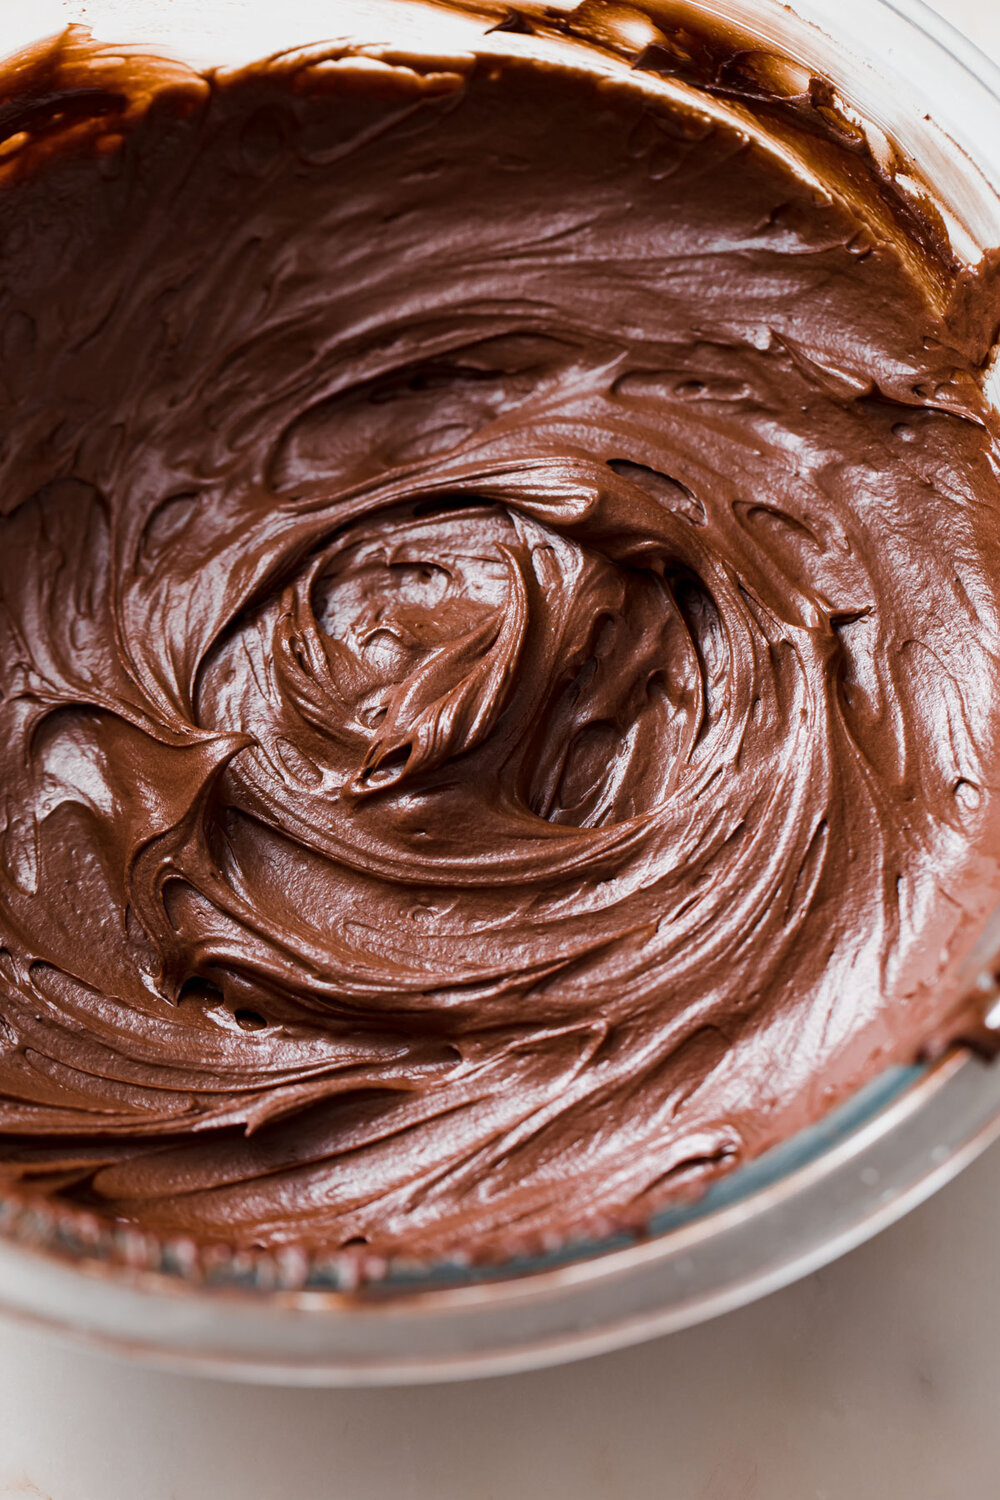 A look inside a bowl of freshly whipped chocolate ganache frosting.